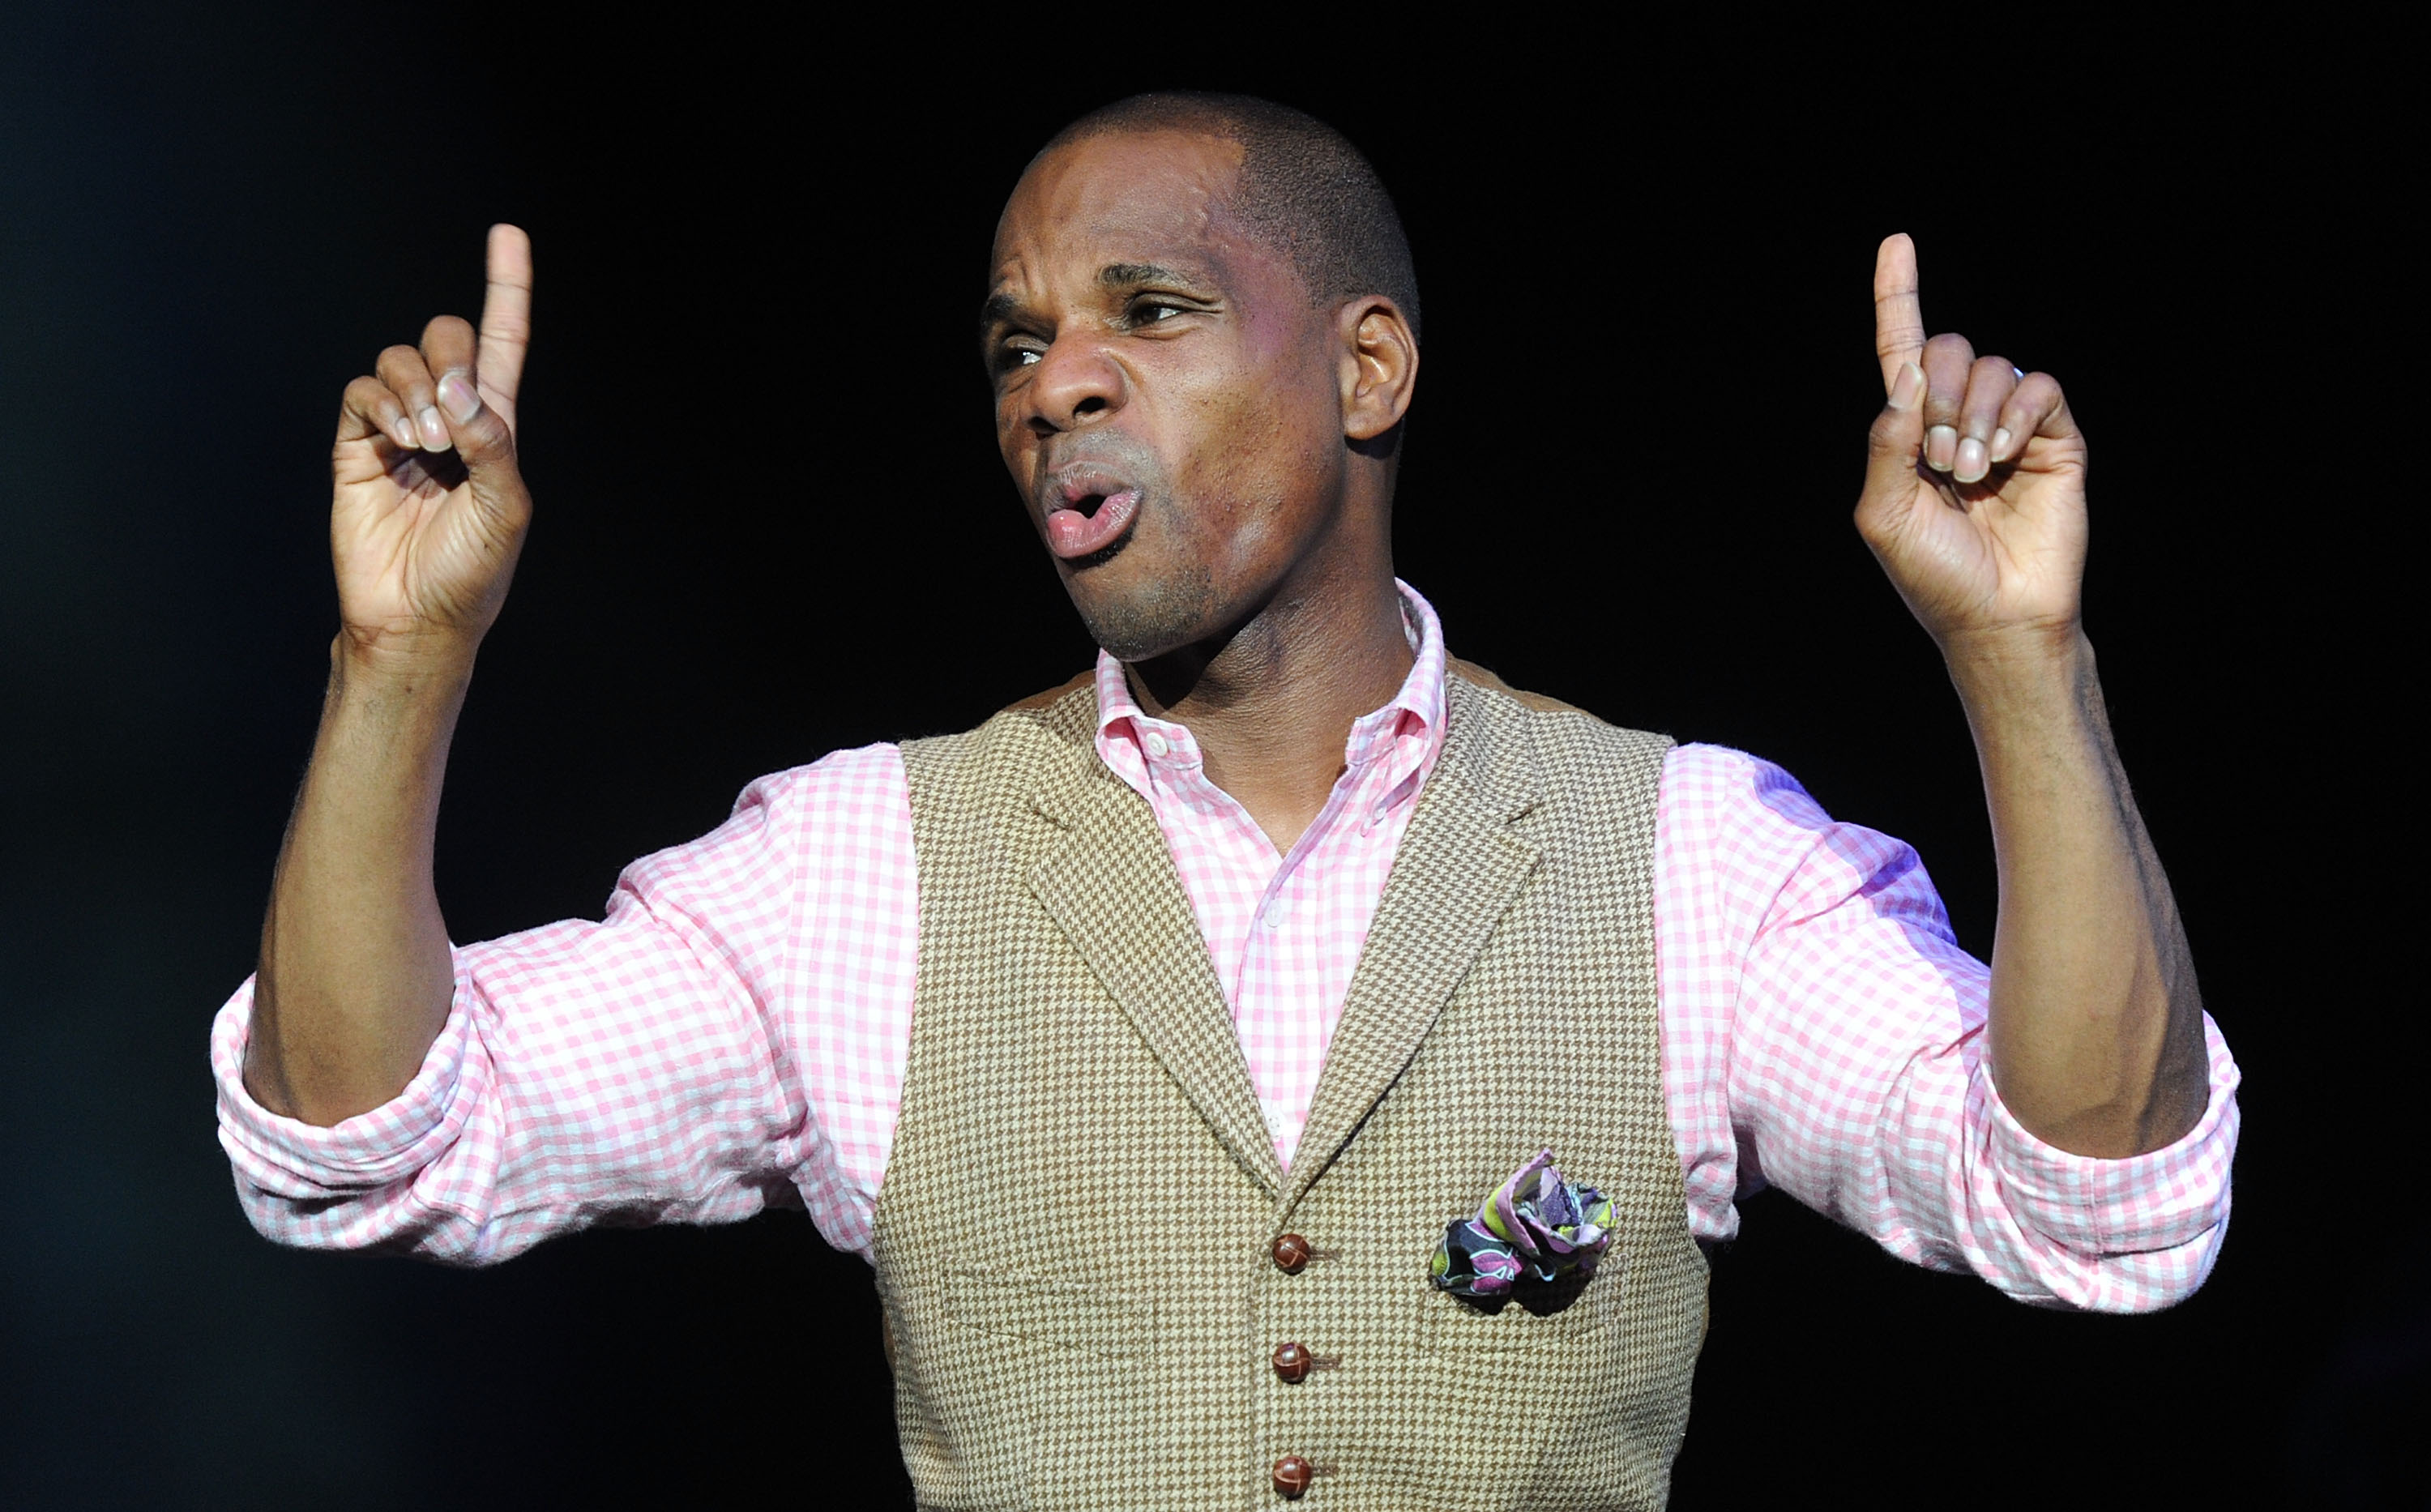 GOSPEL LEGEND 'KIRK FRANKLIN' TALKS ABOUT LOSING HIS RELIGION & ENCOURAGES YOU TO DO THE SAME!